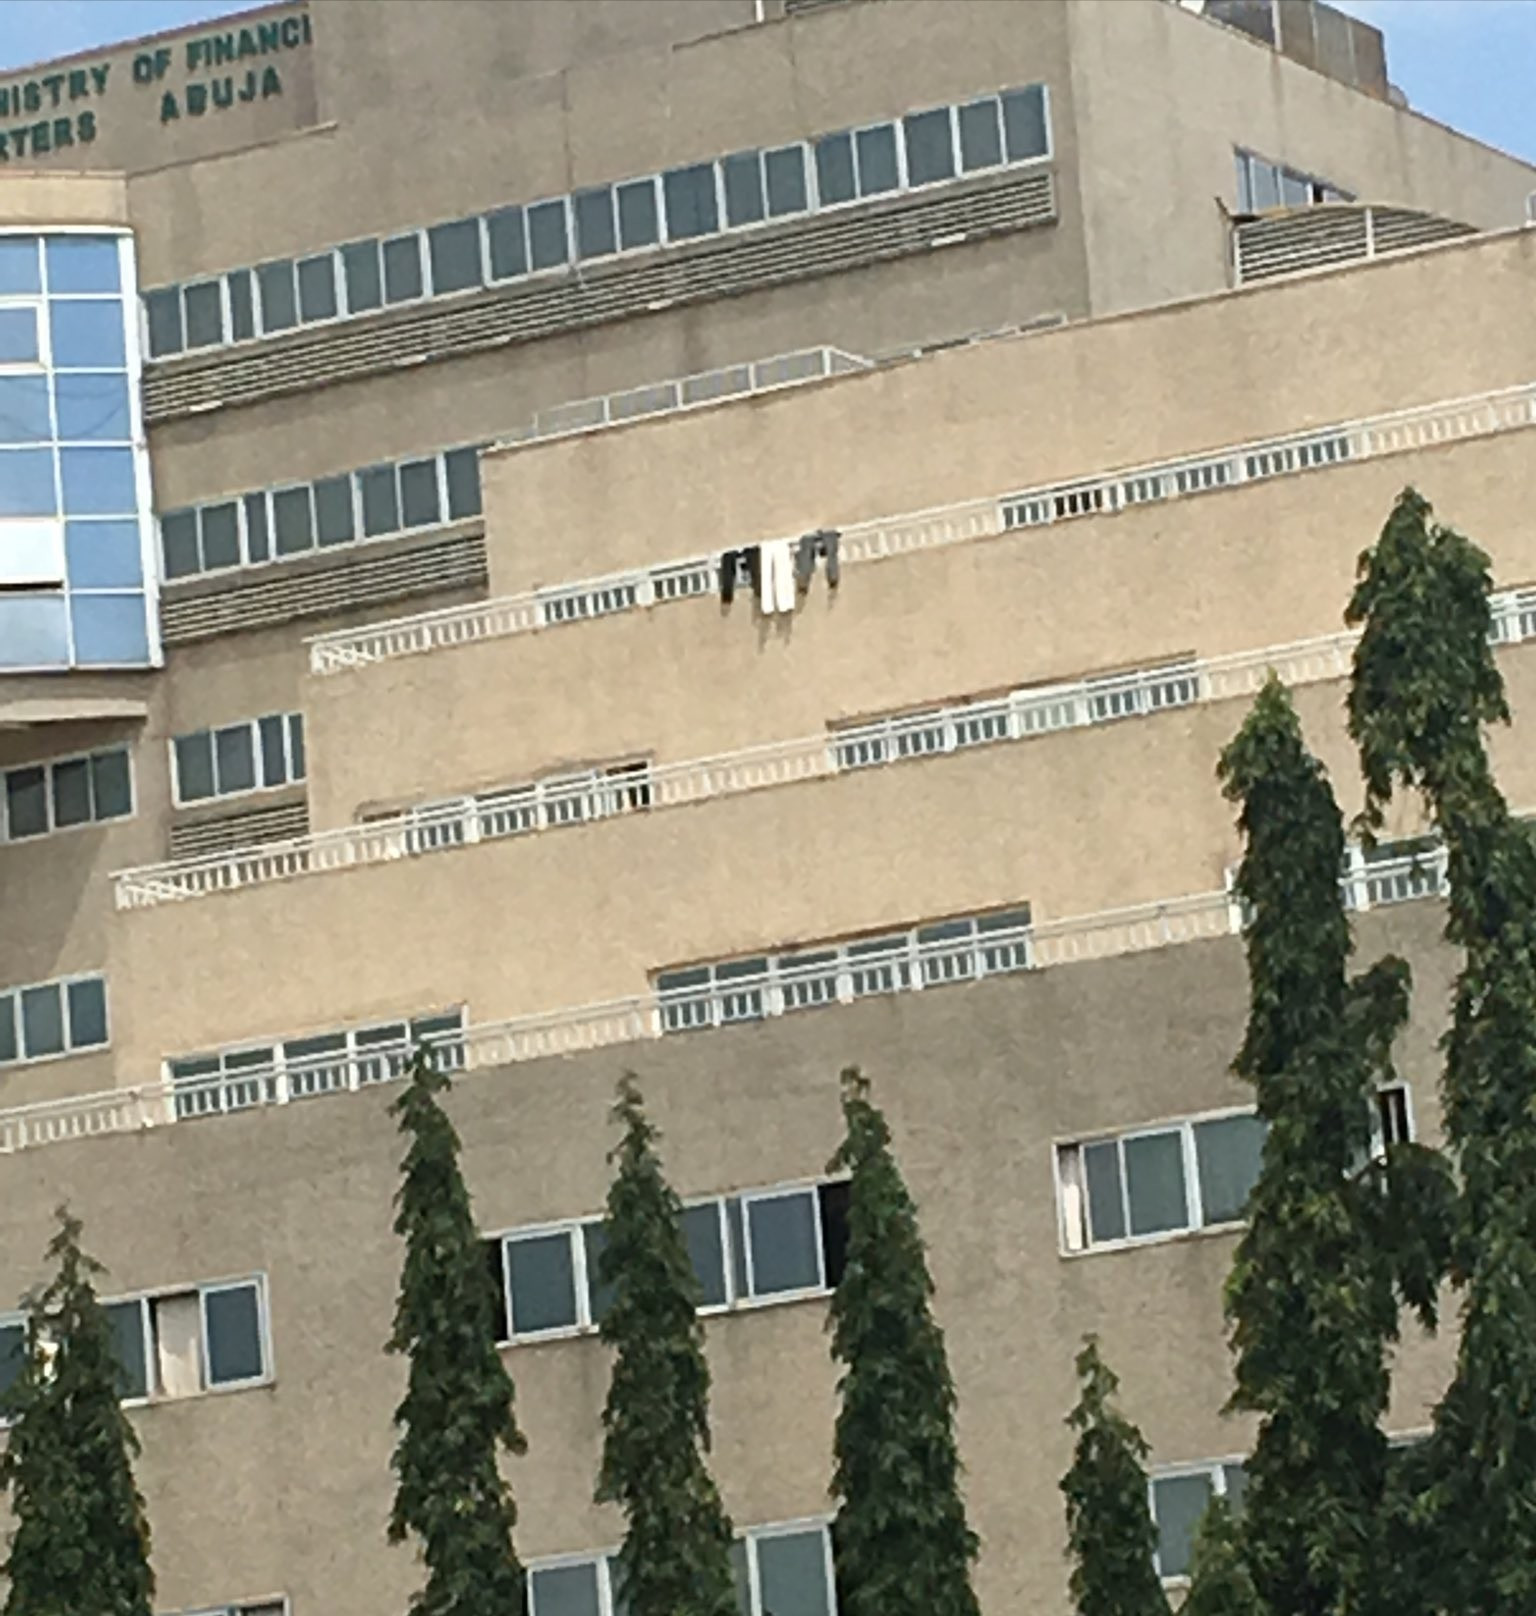 Clothes spread on rail at the Ministry of Finance building elicits criticisms